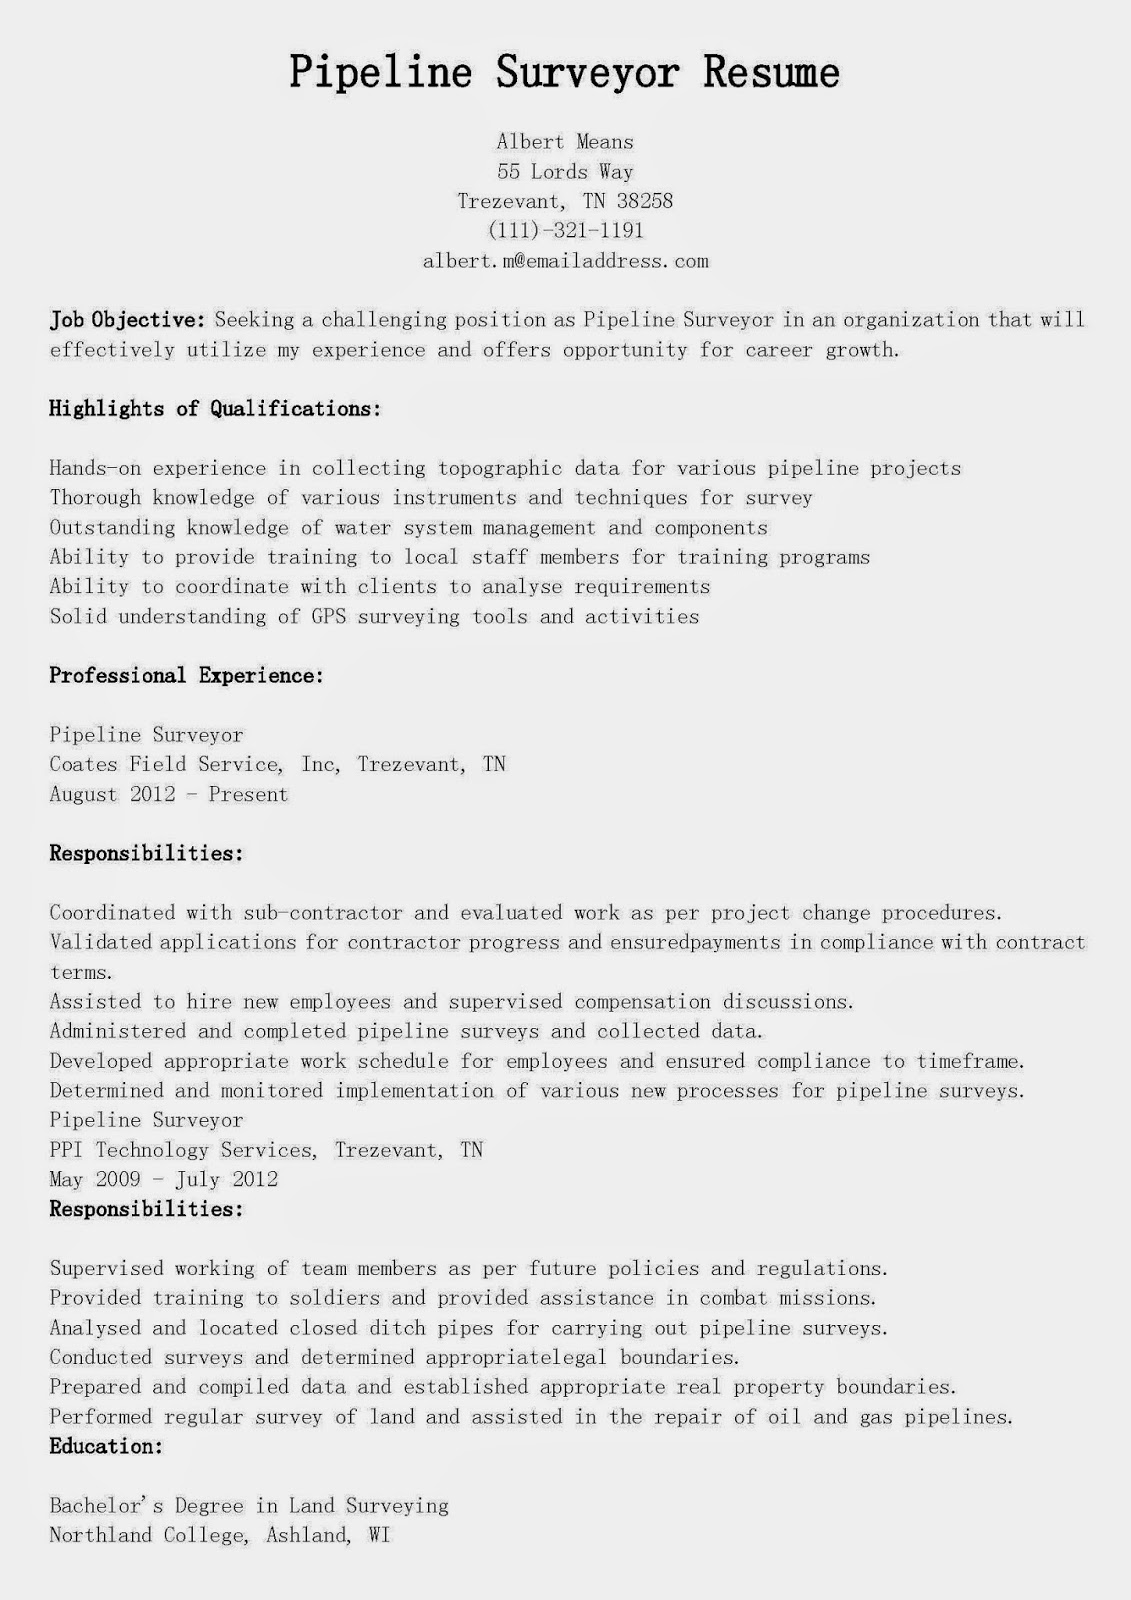 Land surveyor resume examples